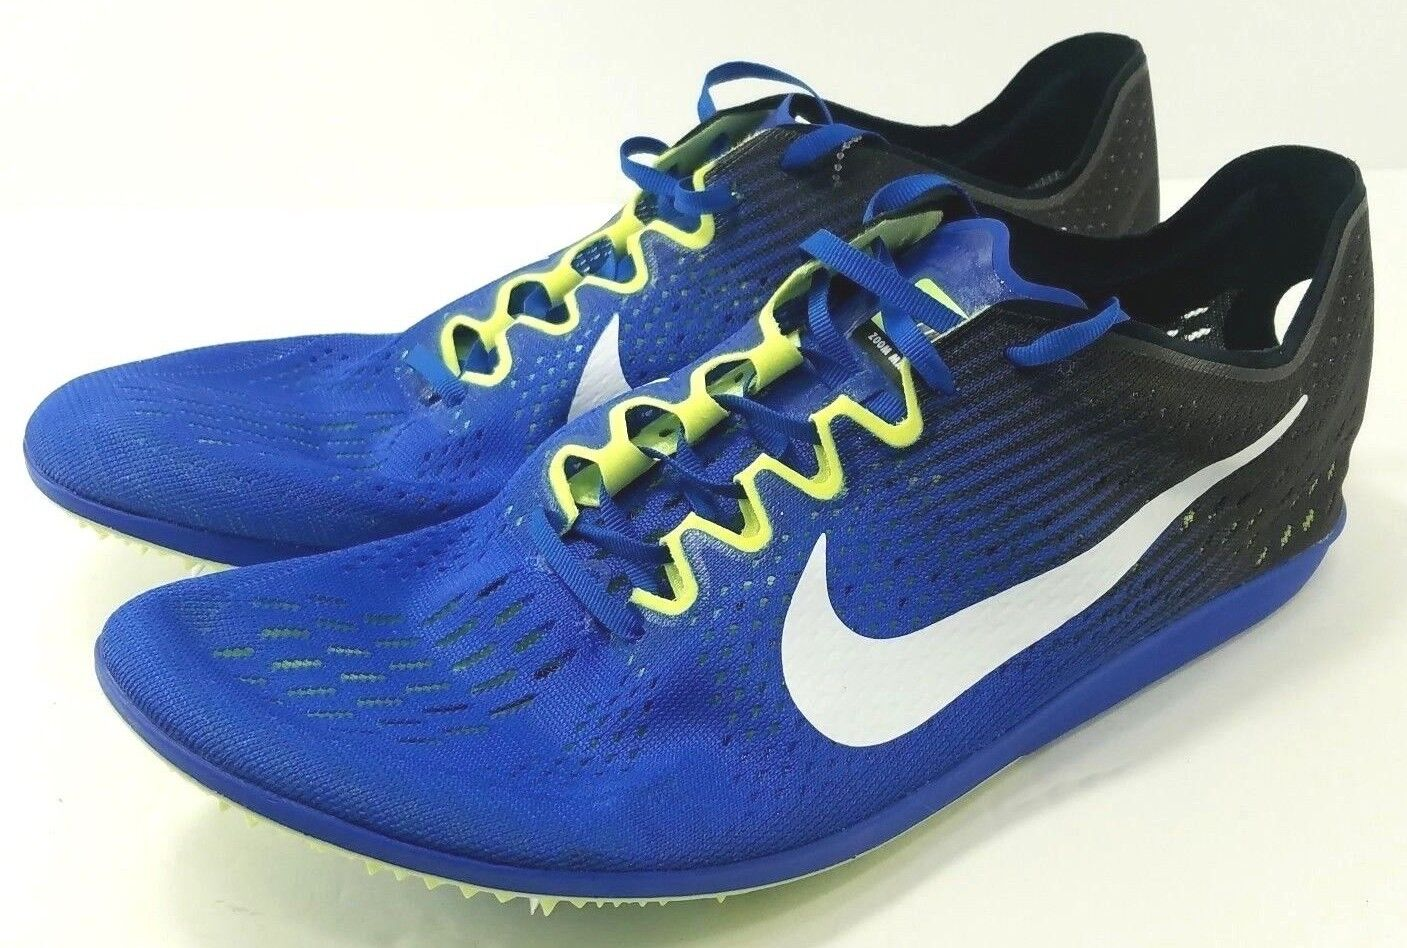 Nike Mens Racing Distance Zoom Matumbo Track shoes Spikes 835995-413 Size 15